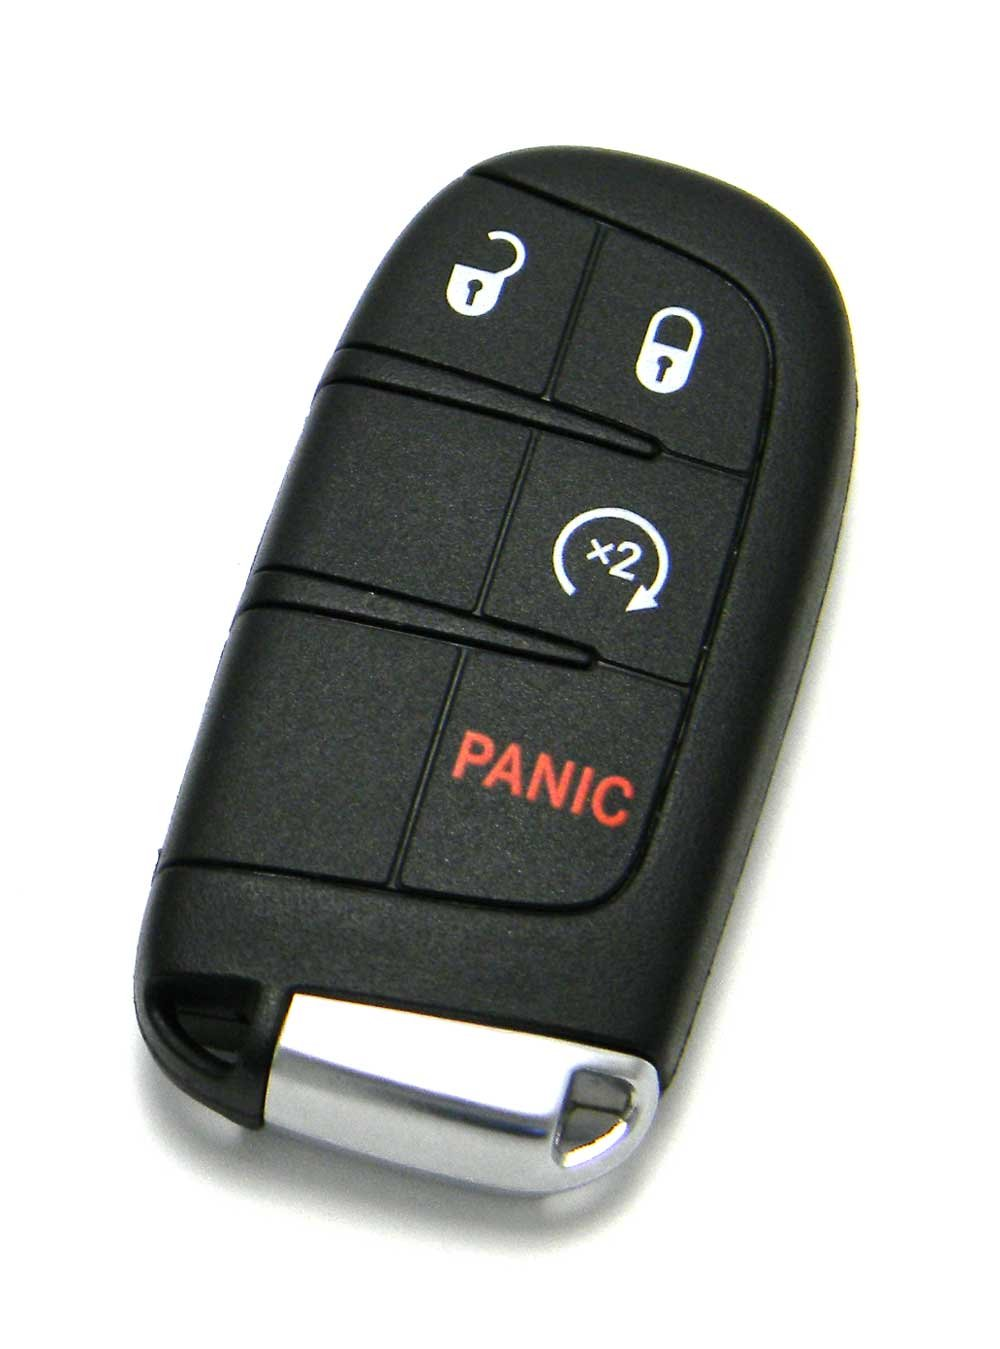 Mopar 4-Button Smart Proximity Key Keyless Entry Remote Fob Compatible With  Dodge (FCC ID: M3N-40821302 / P/N: 68066350)